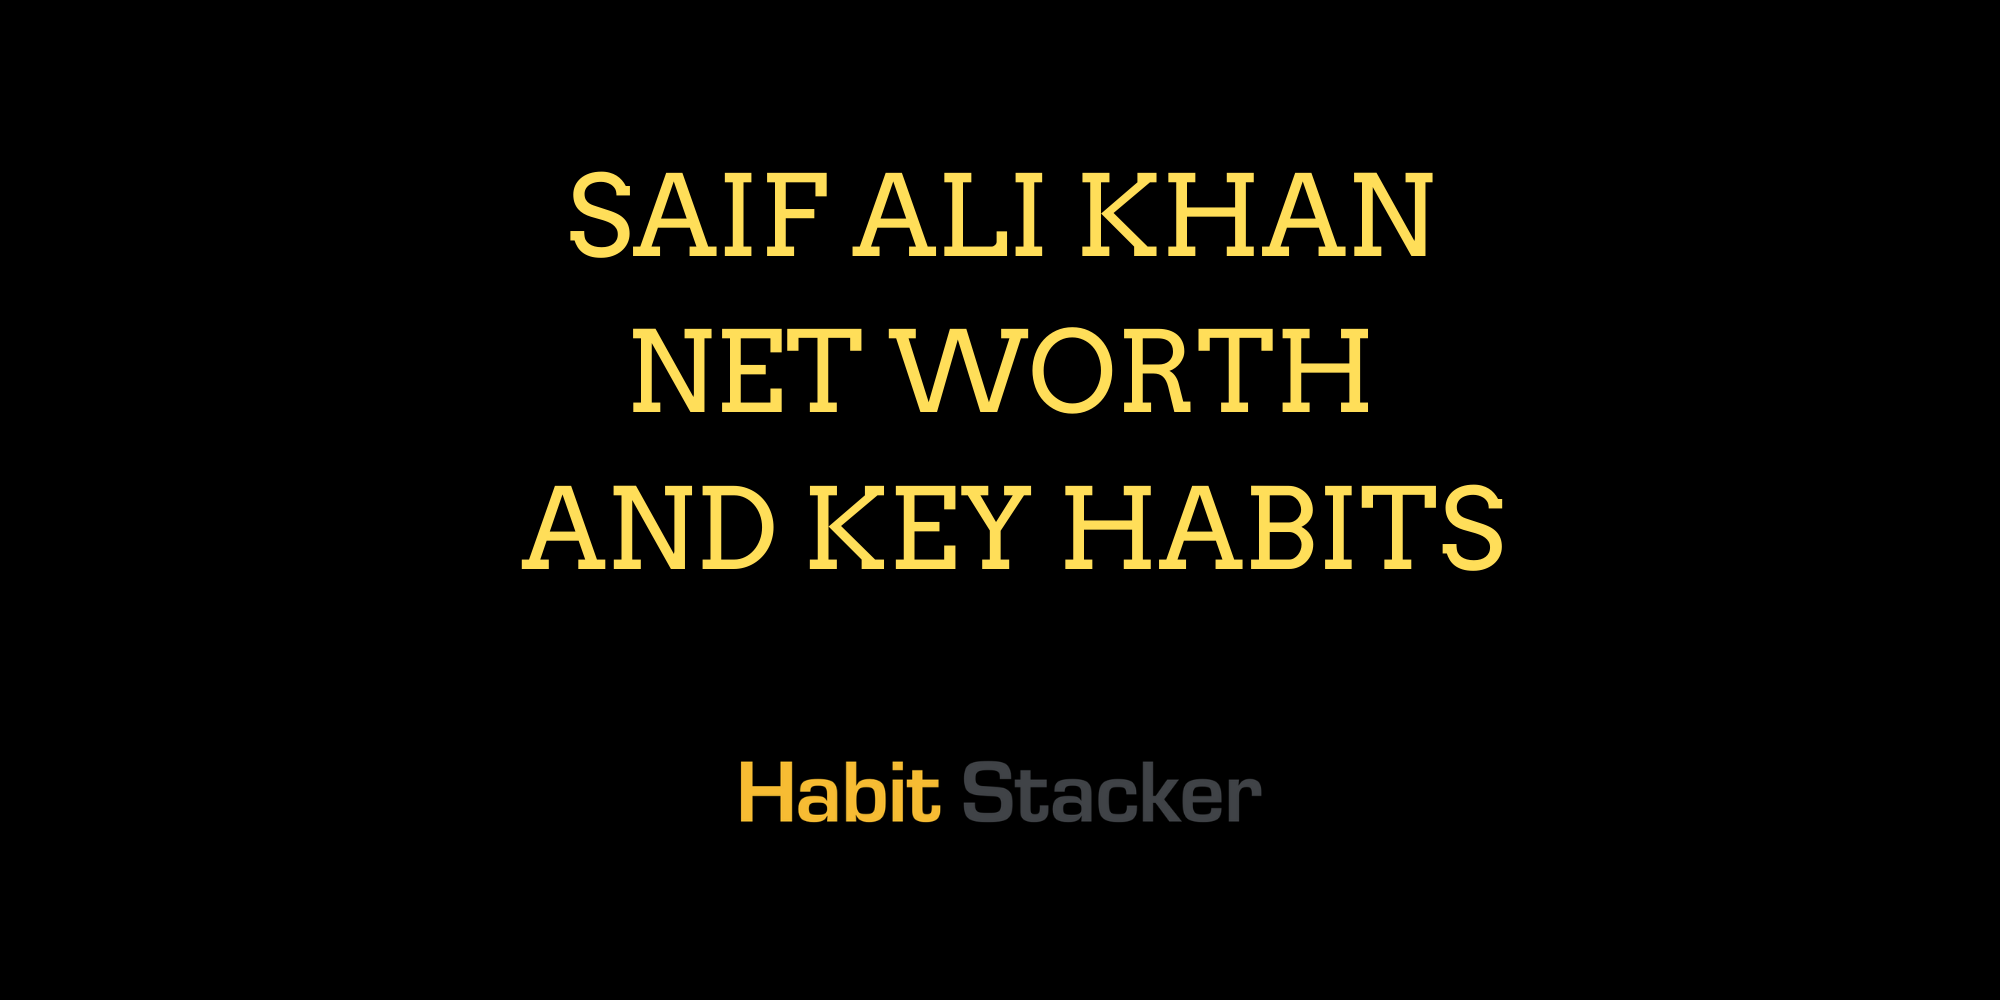 Saif Ali Khan Net Worth and Key Habits